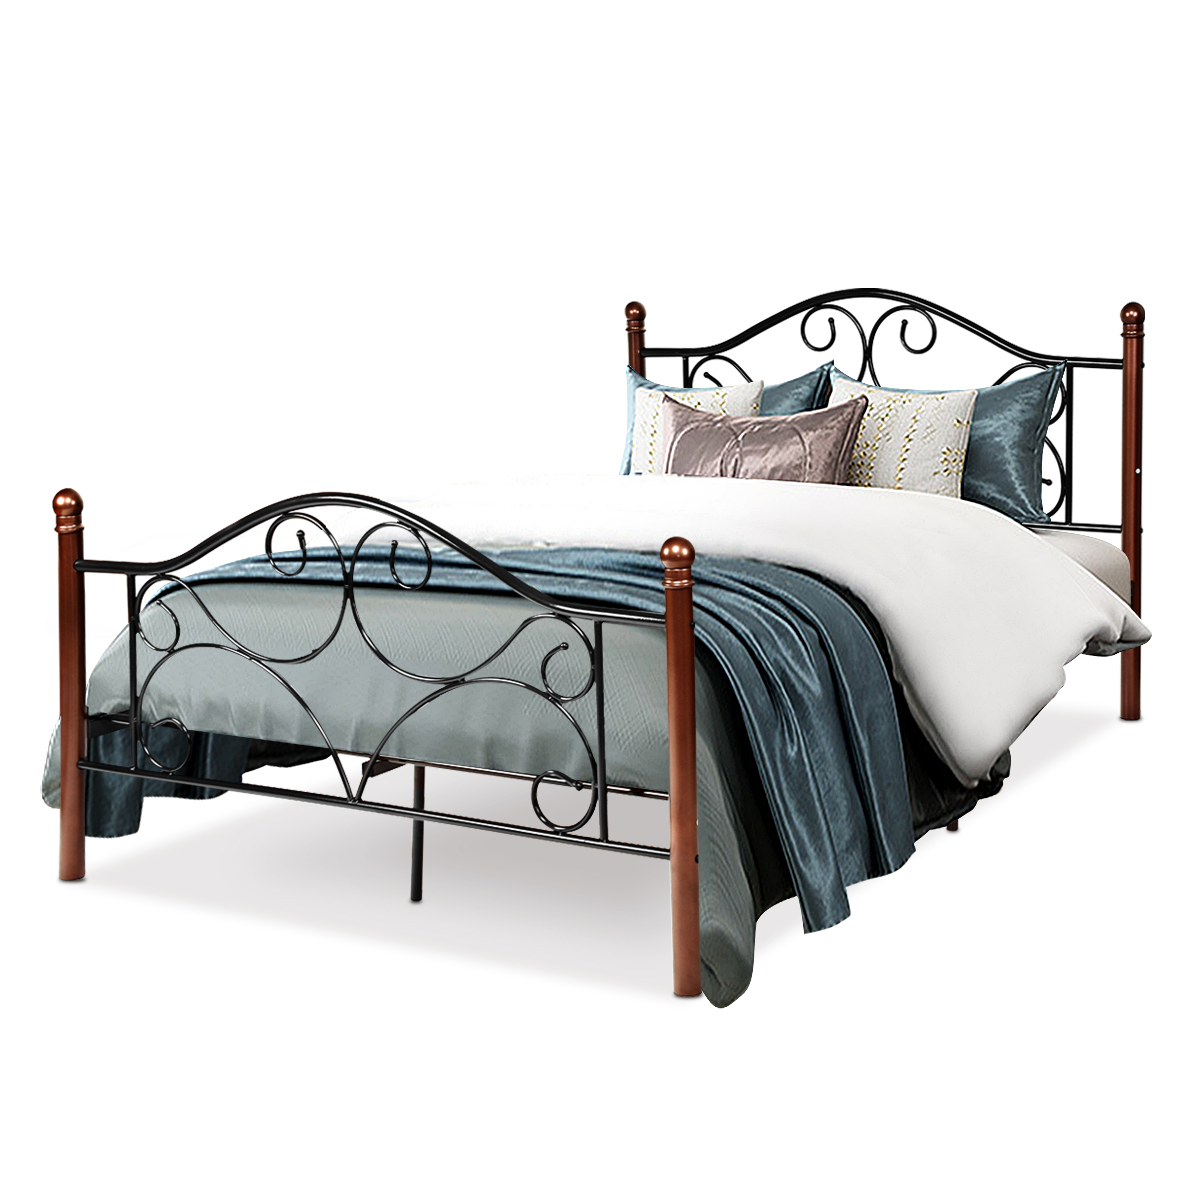 Costway Full Size Steel Bed Frame